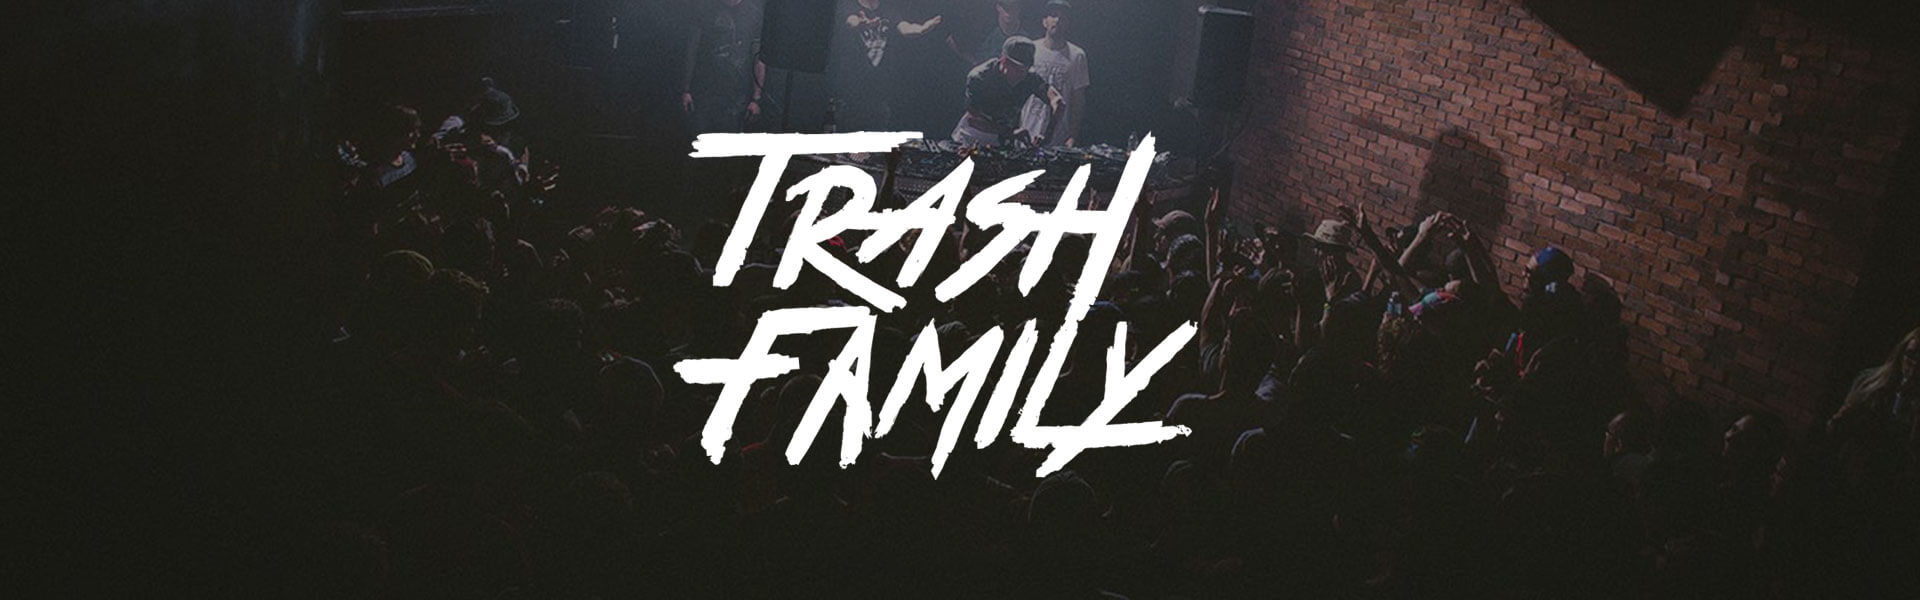 Trash Family Record Label